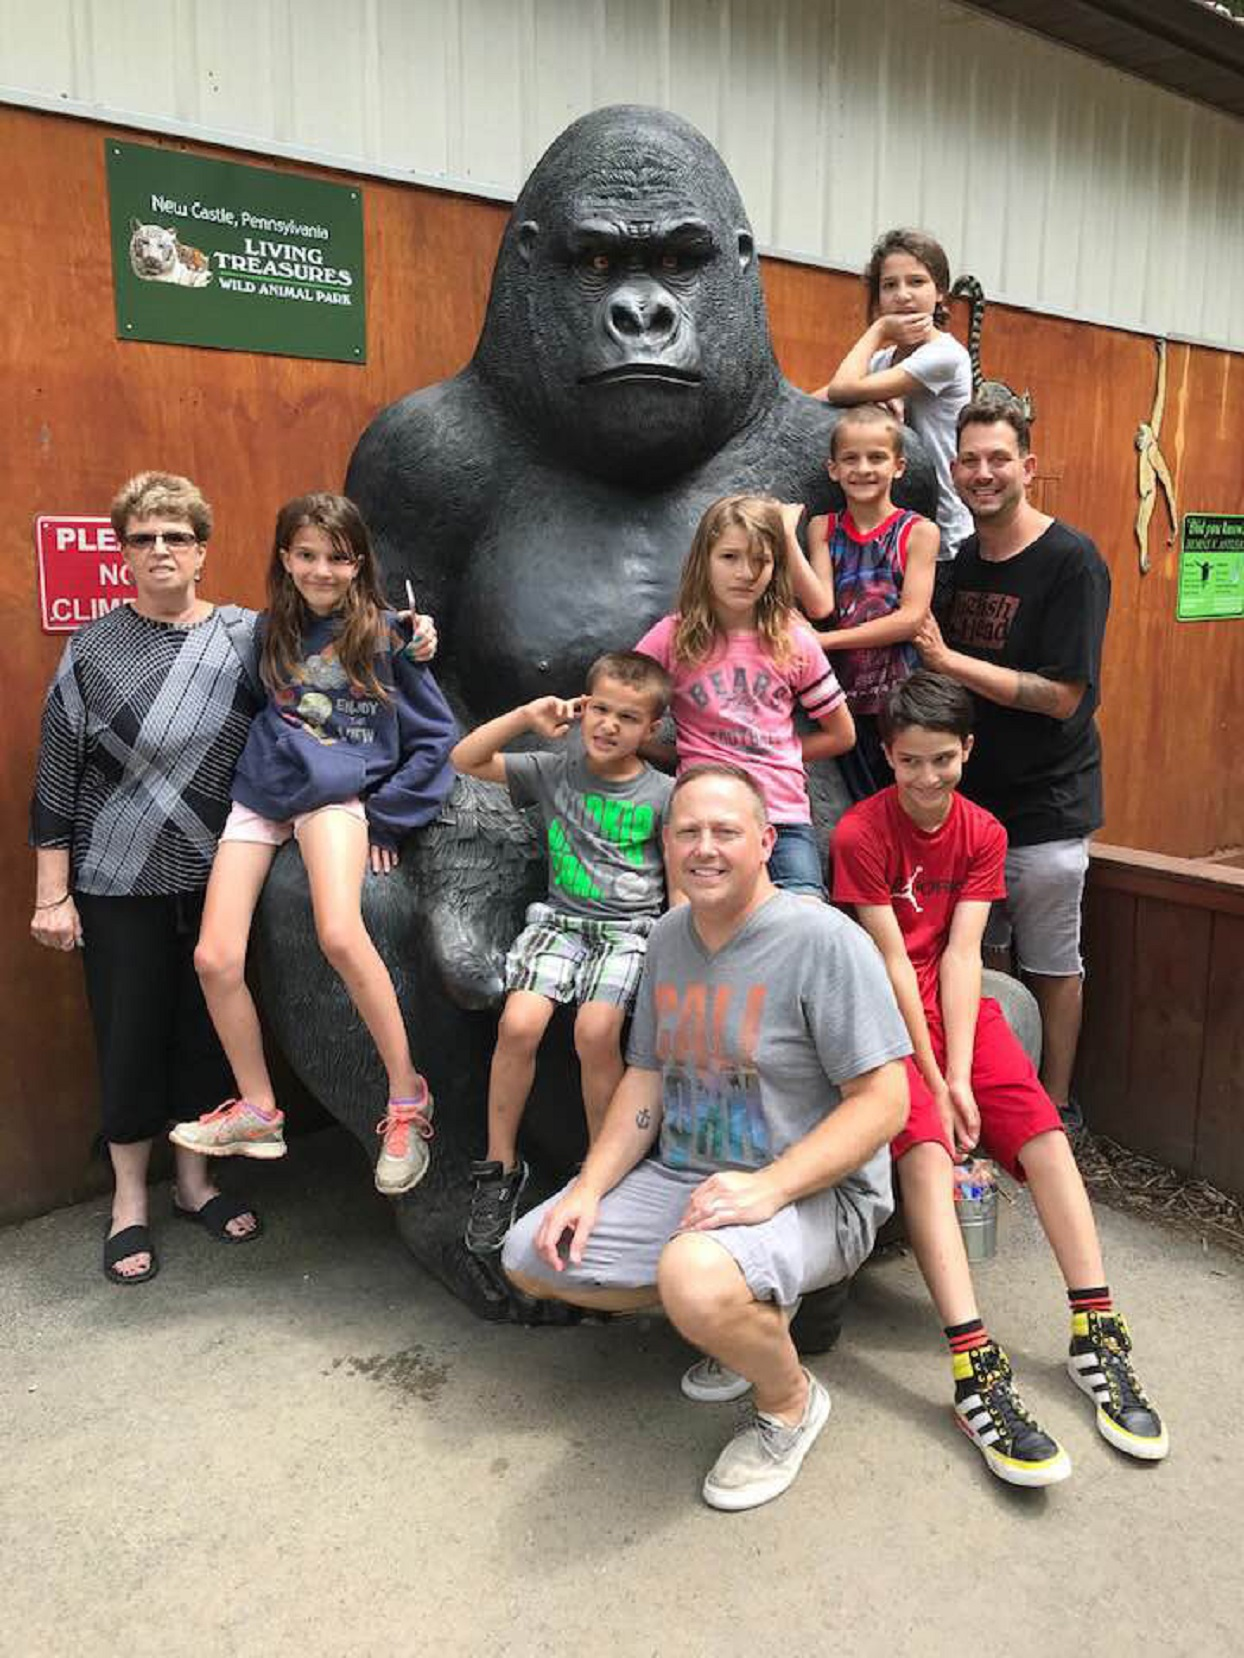 Steve Anderson-McLean and Rob Anderson-McLean and family with gorilla statue